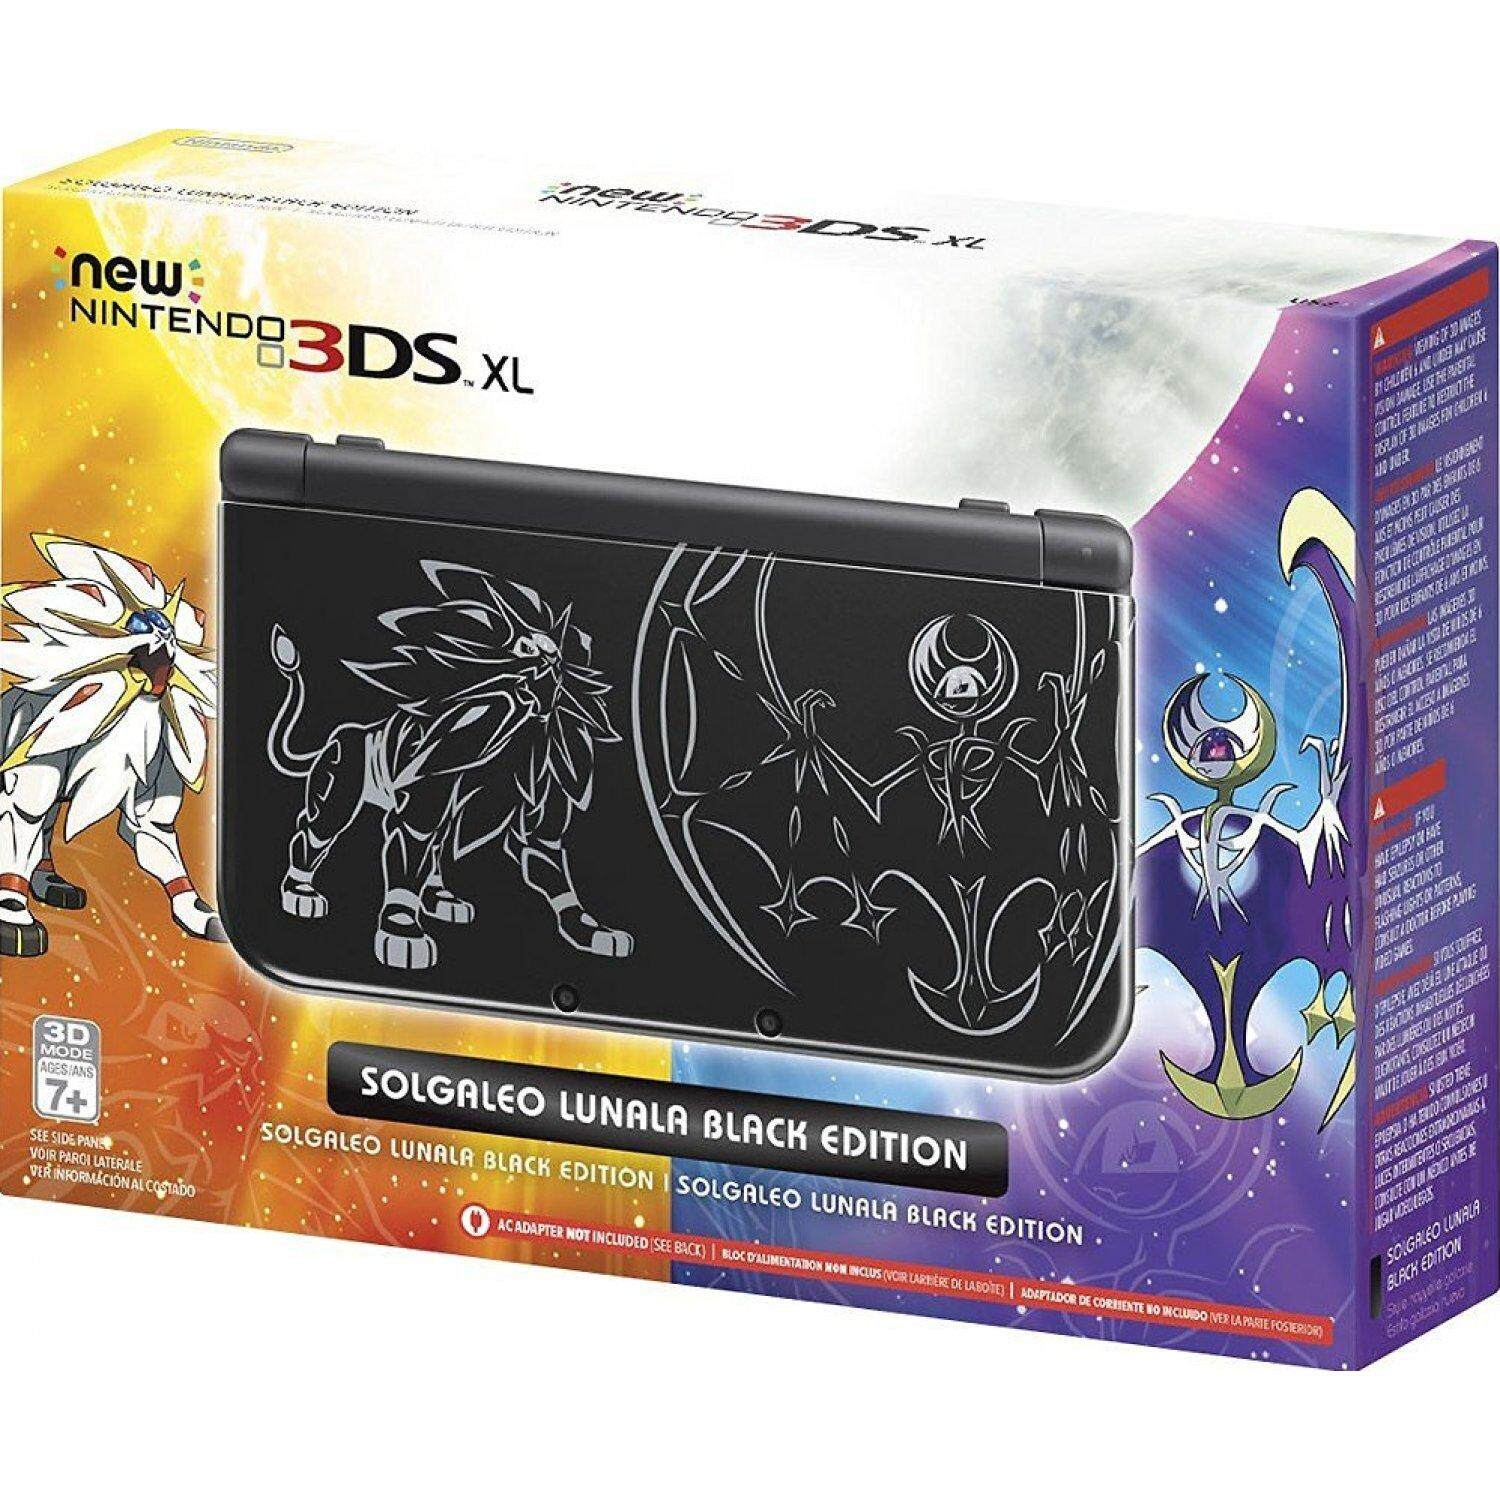 nintendo new 3ds xl console (refurbished)